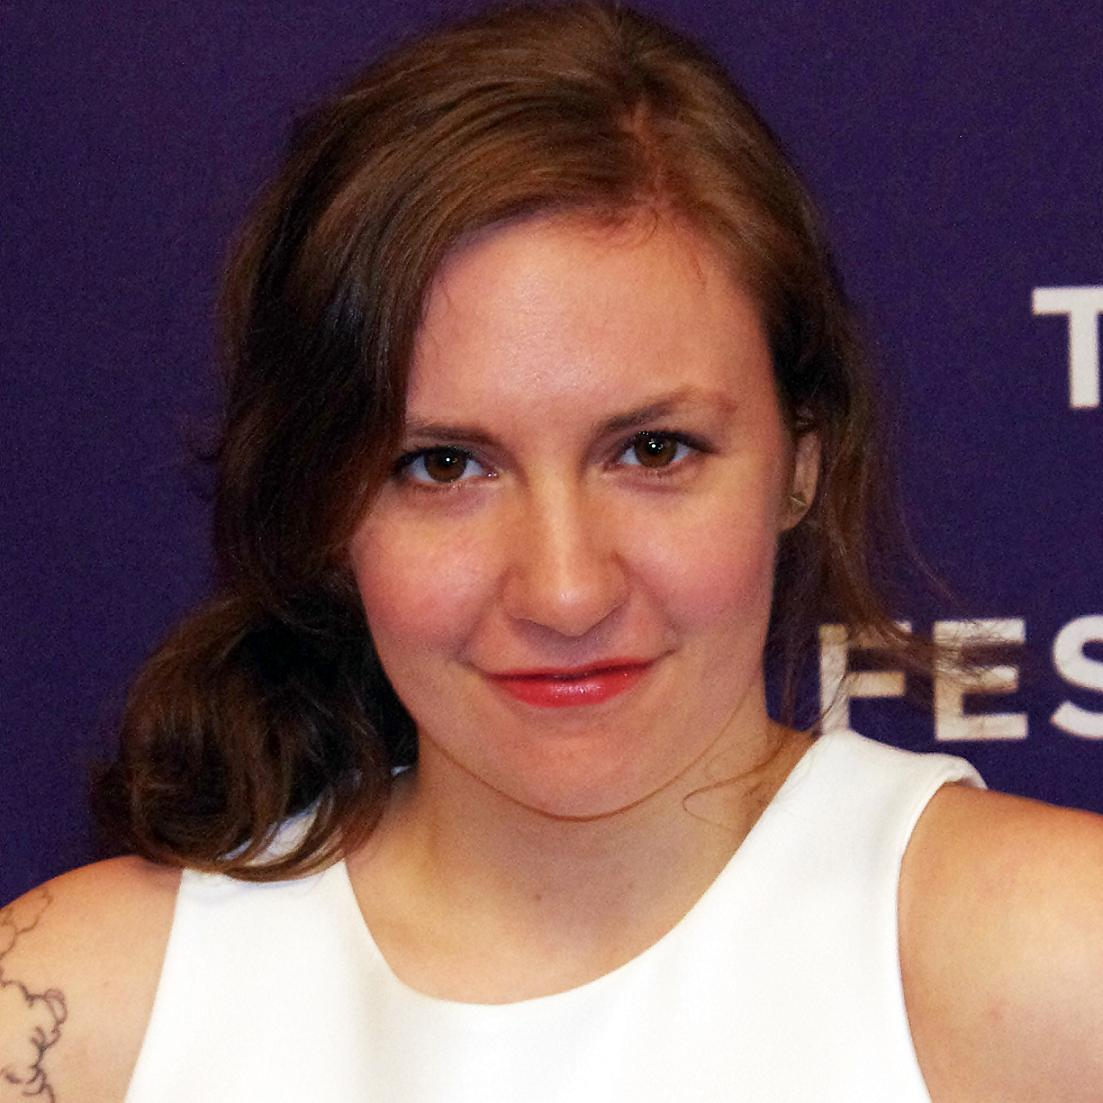 Lena Dunham Bio, Net Worth, Facts